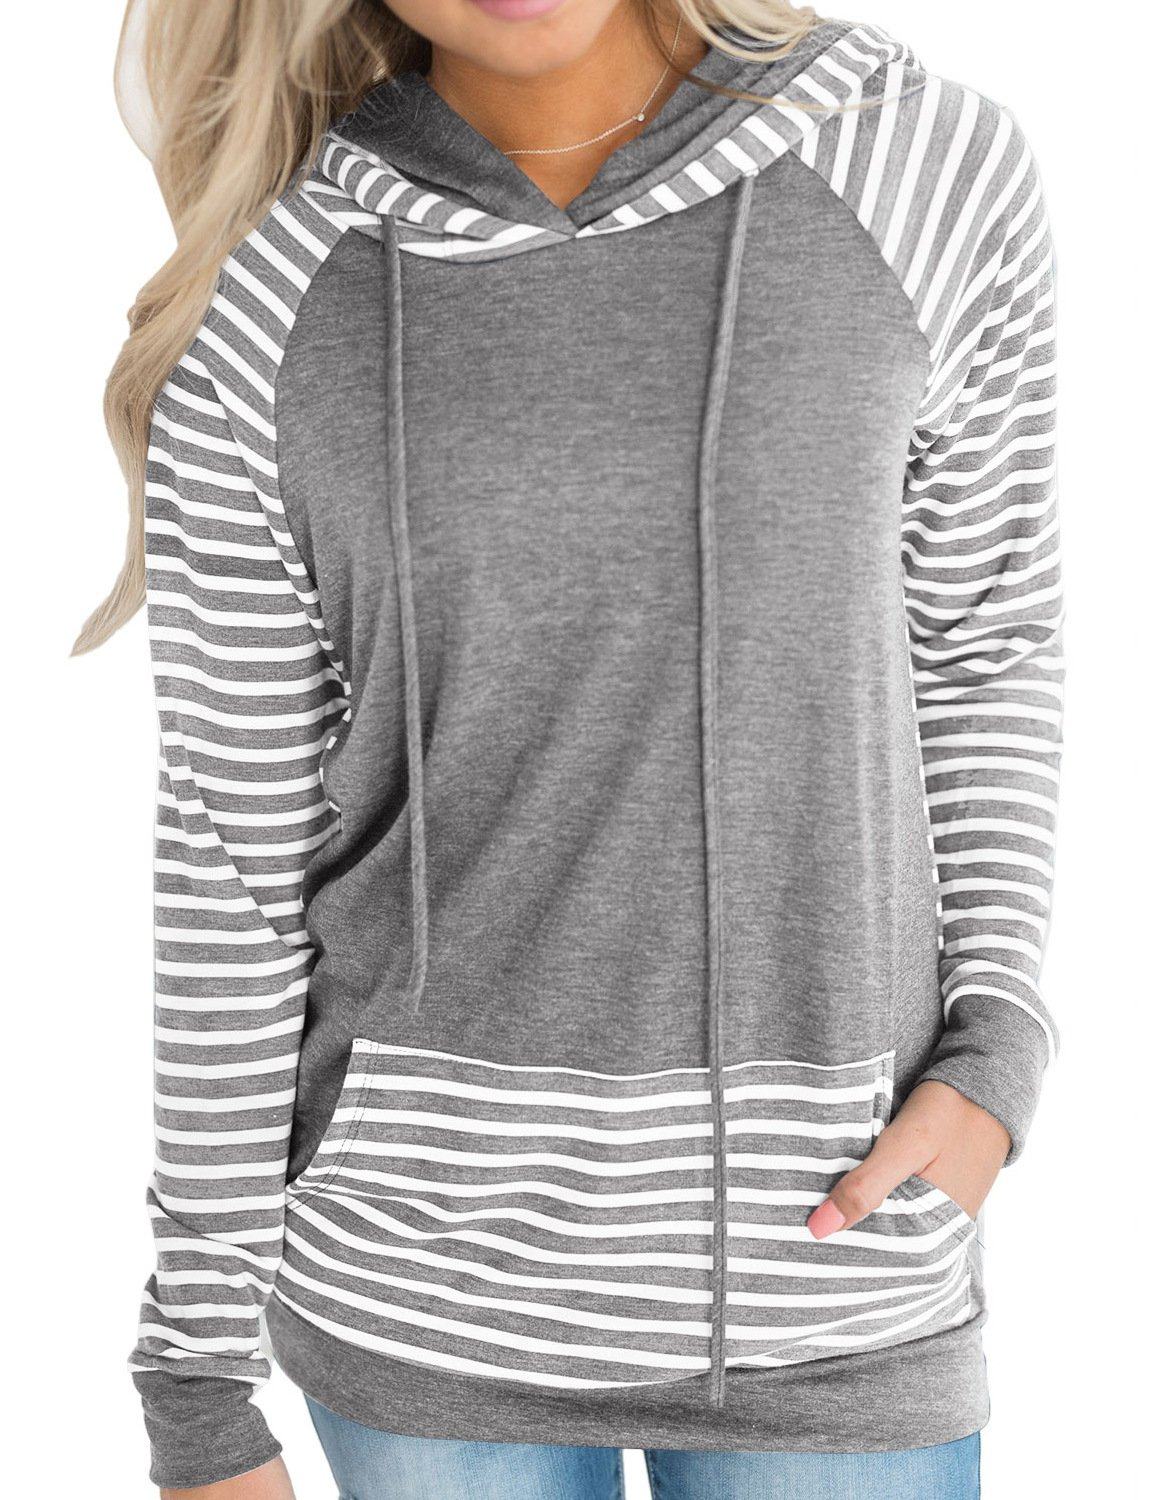 Naier Womens Hooded Sweatshirt Pullover Hoodie Long Sleeve Sweaters Striped Teen Tops Gray XL